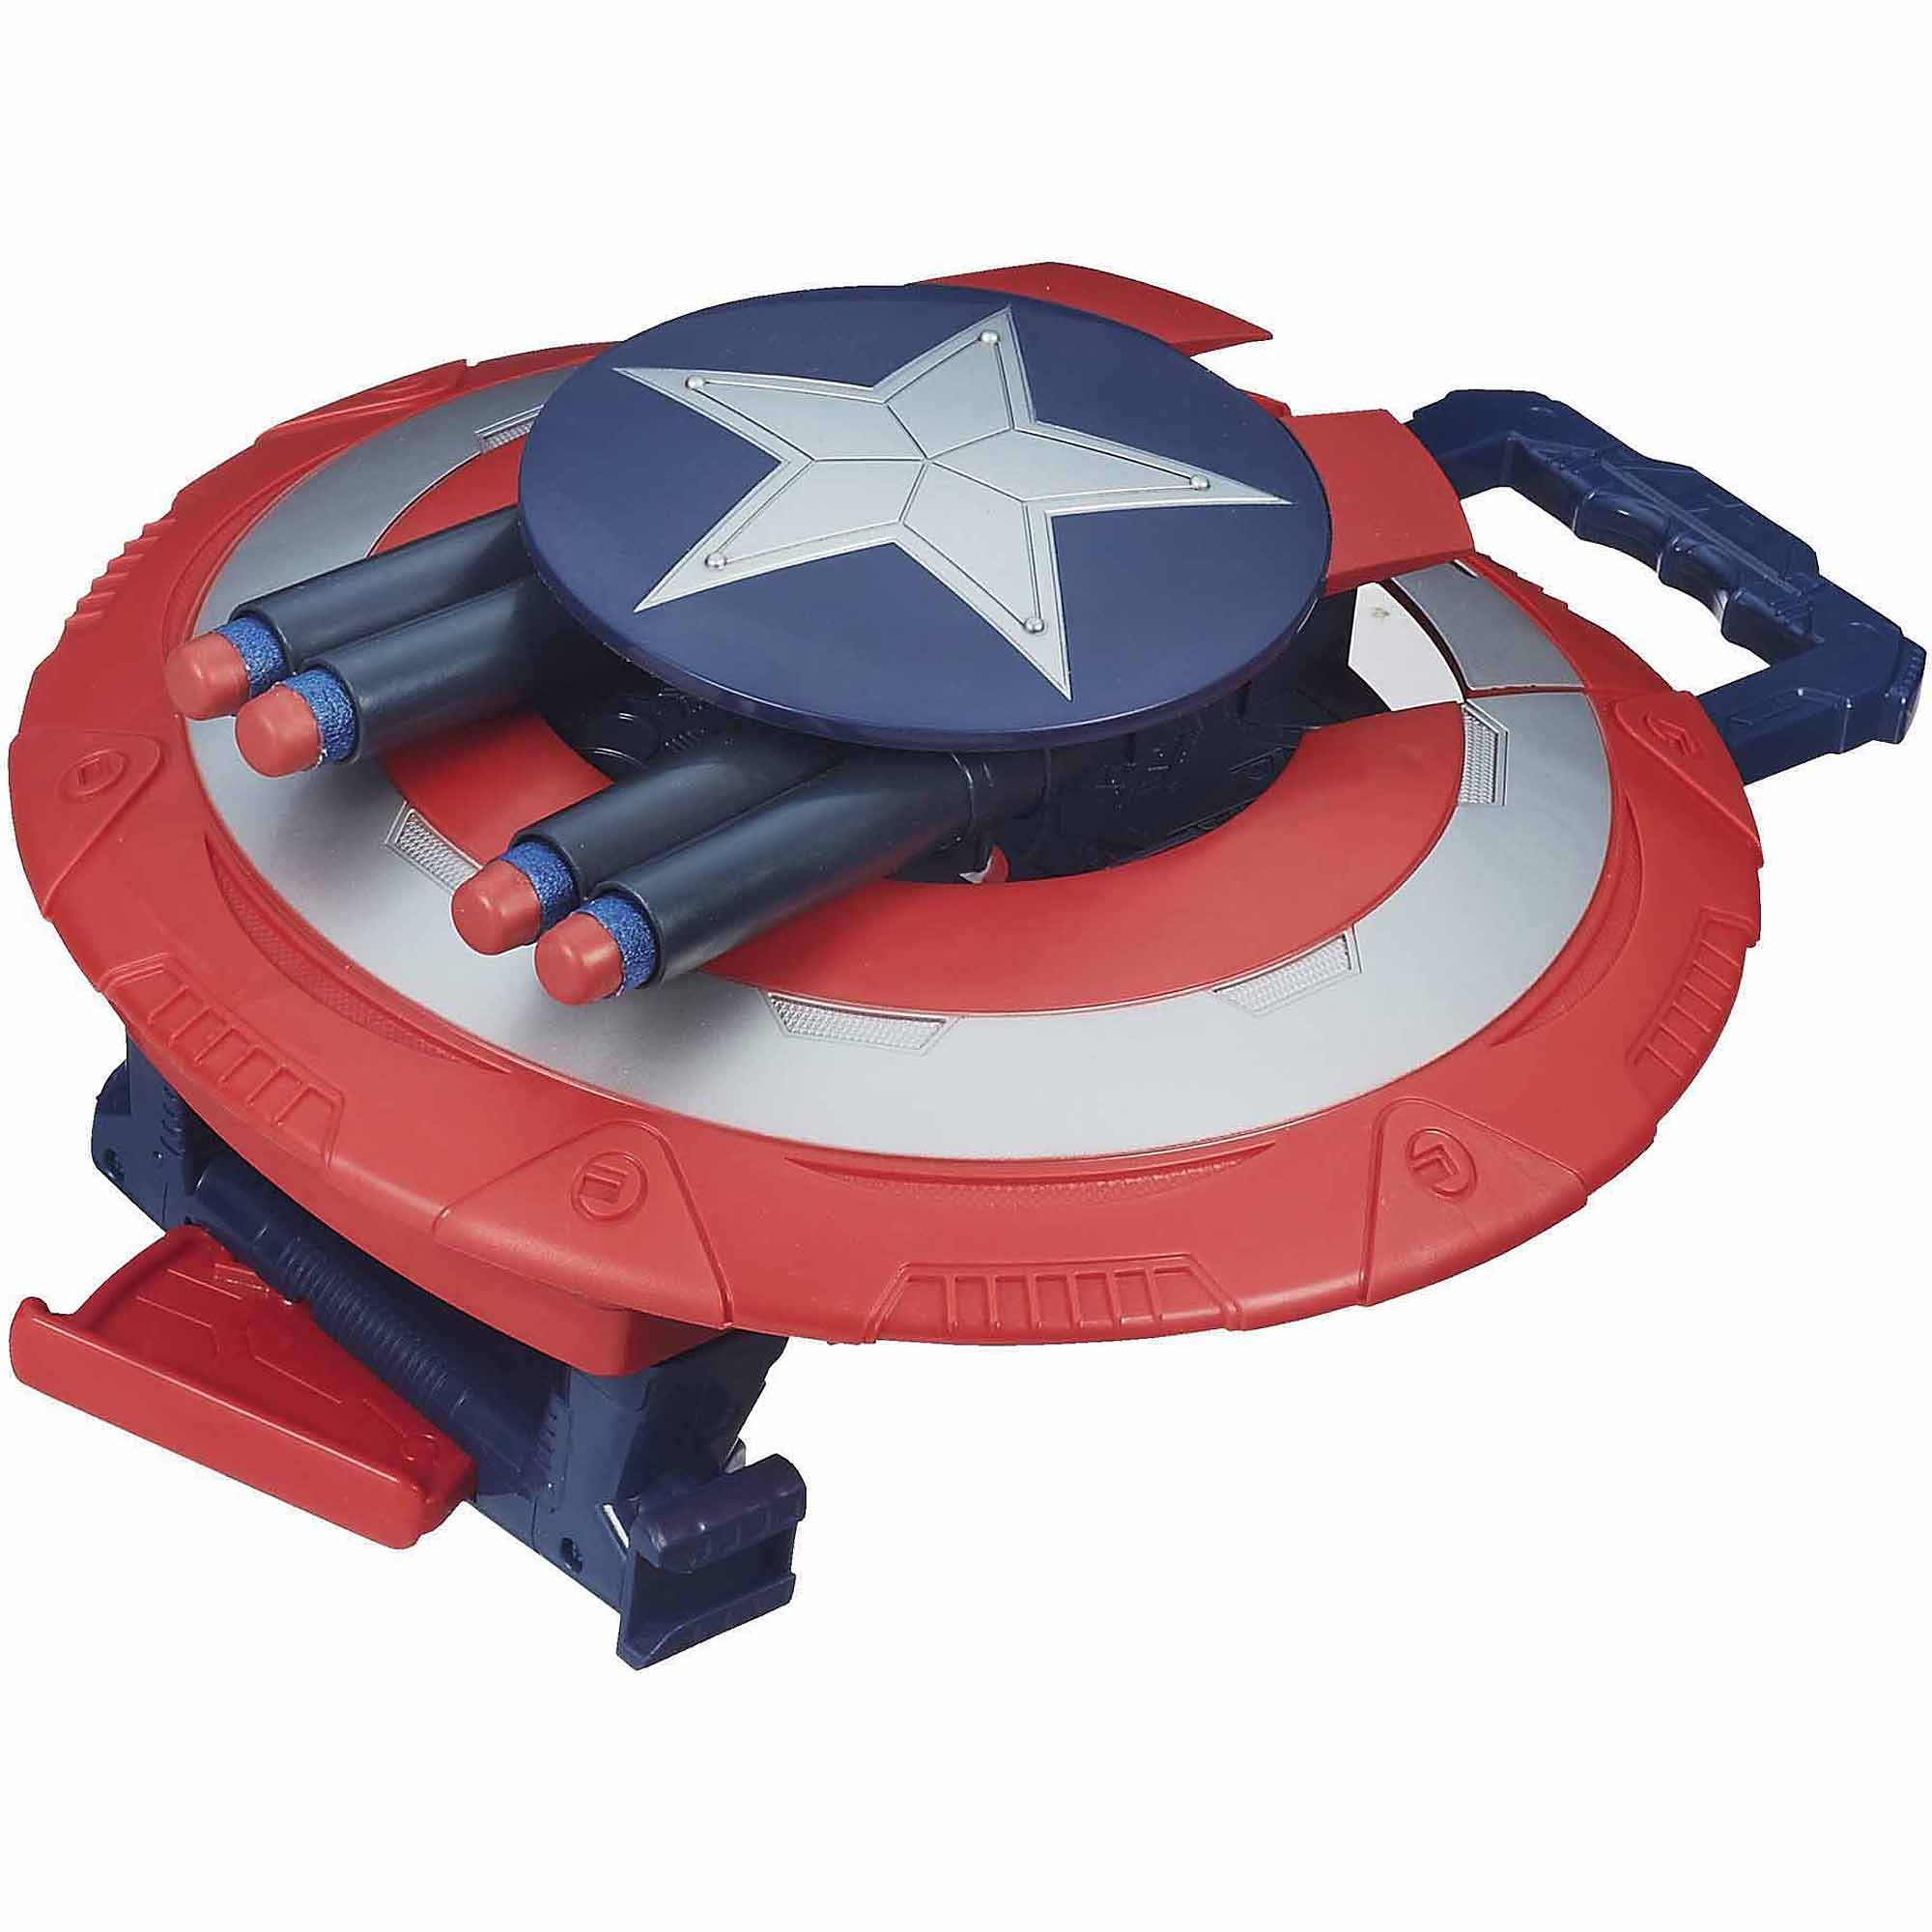 Marvel Captain America Super Soldier Gear Stealthfire Shield Toy